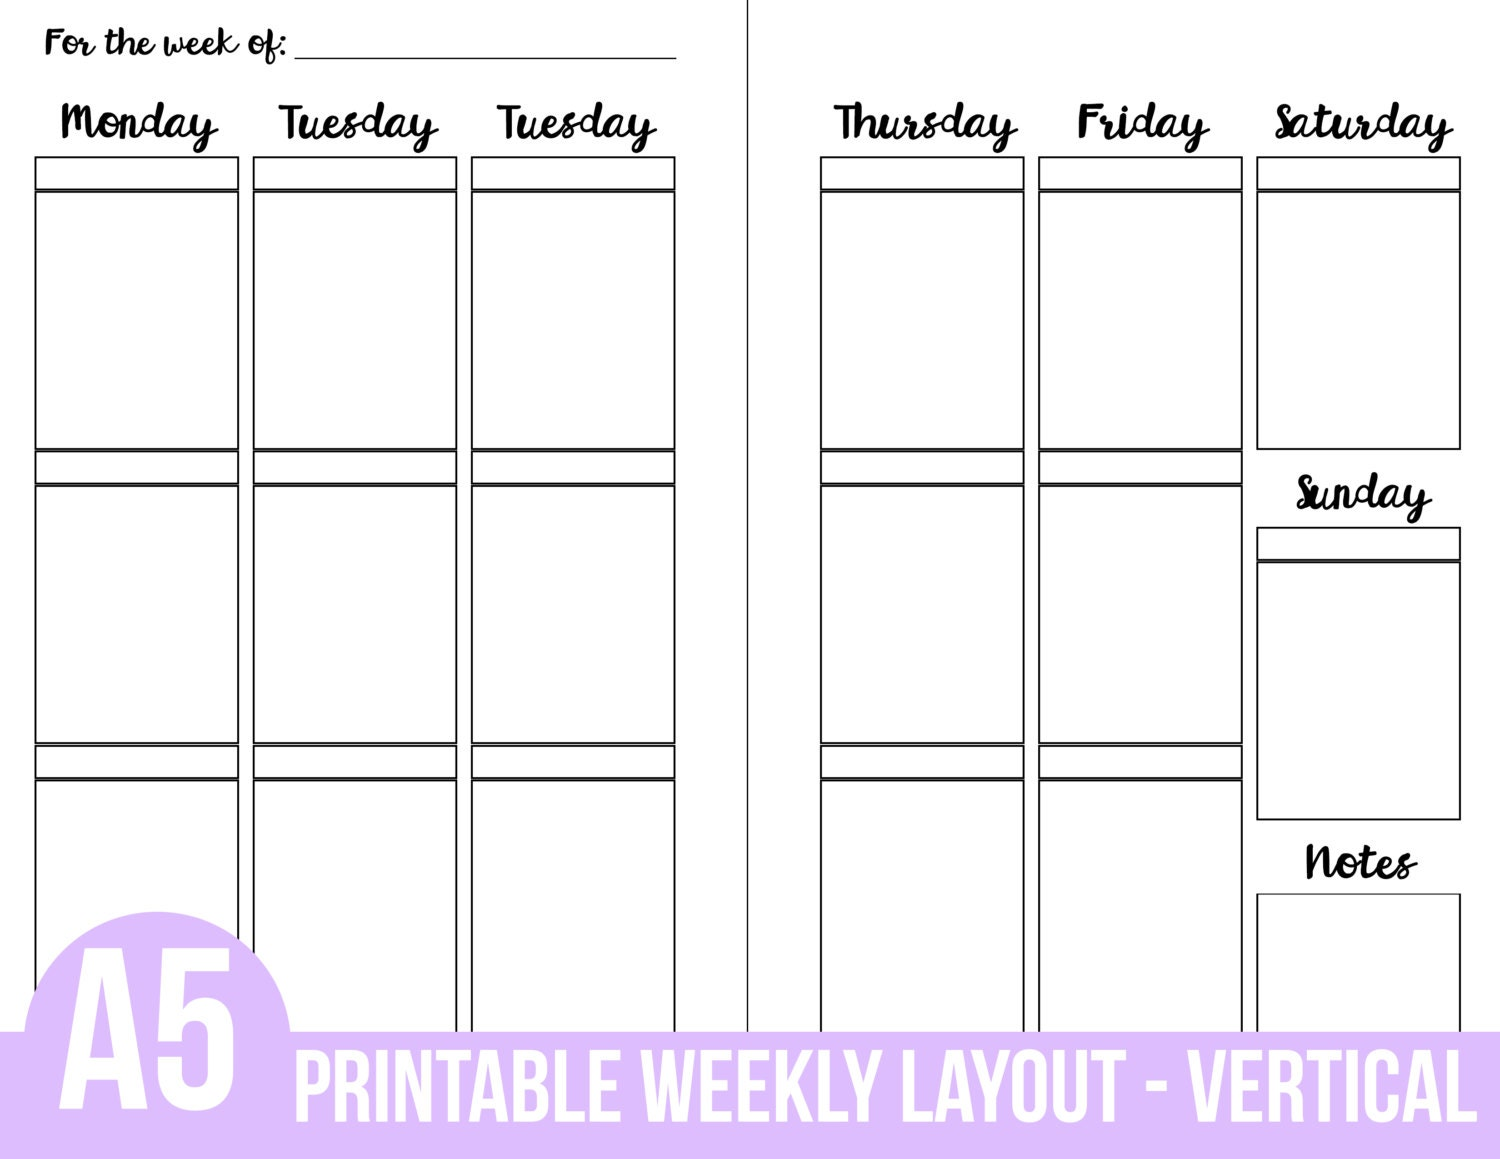 Weekly Vertical Calendar Template : Printable a planner inserts weekly vertical layout section